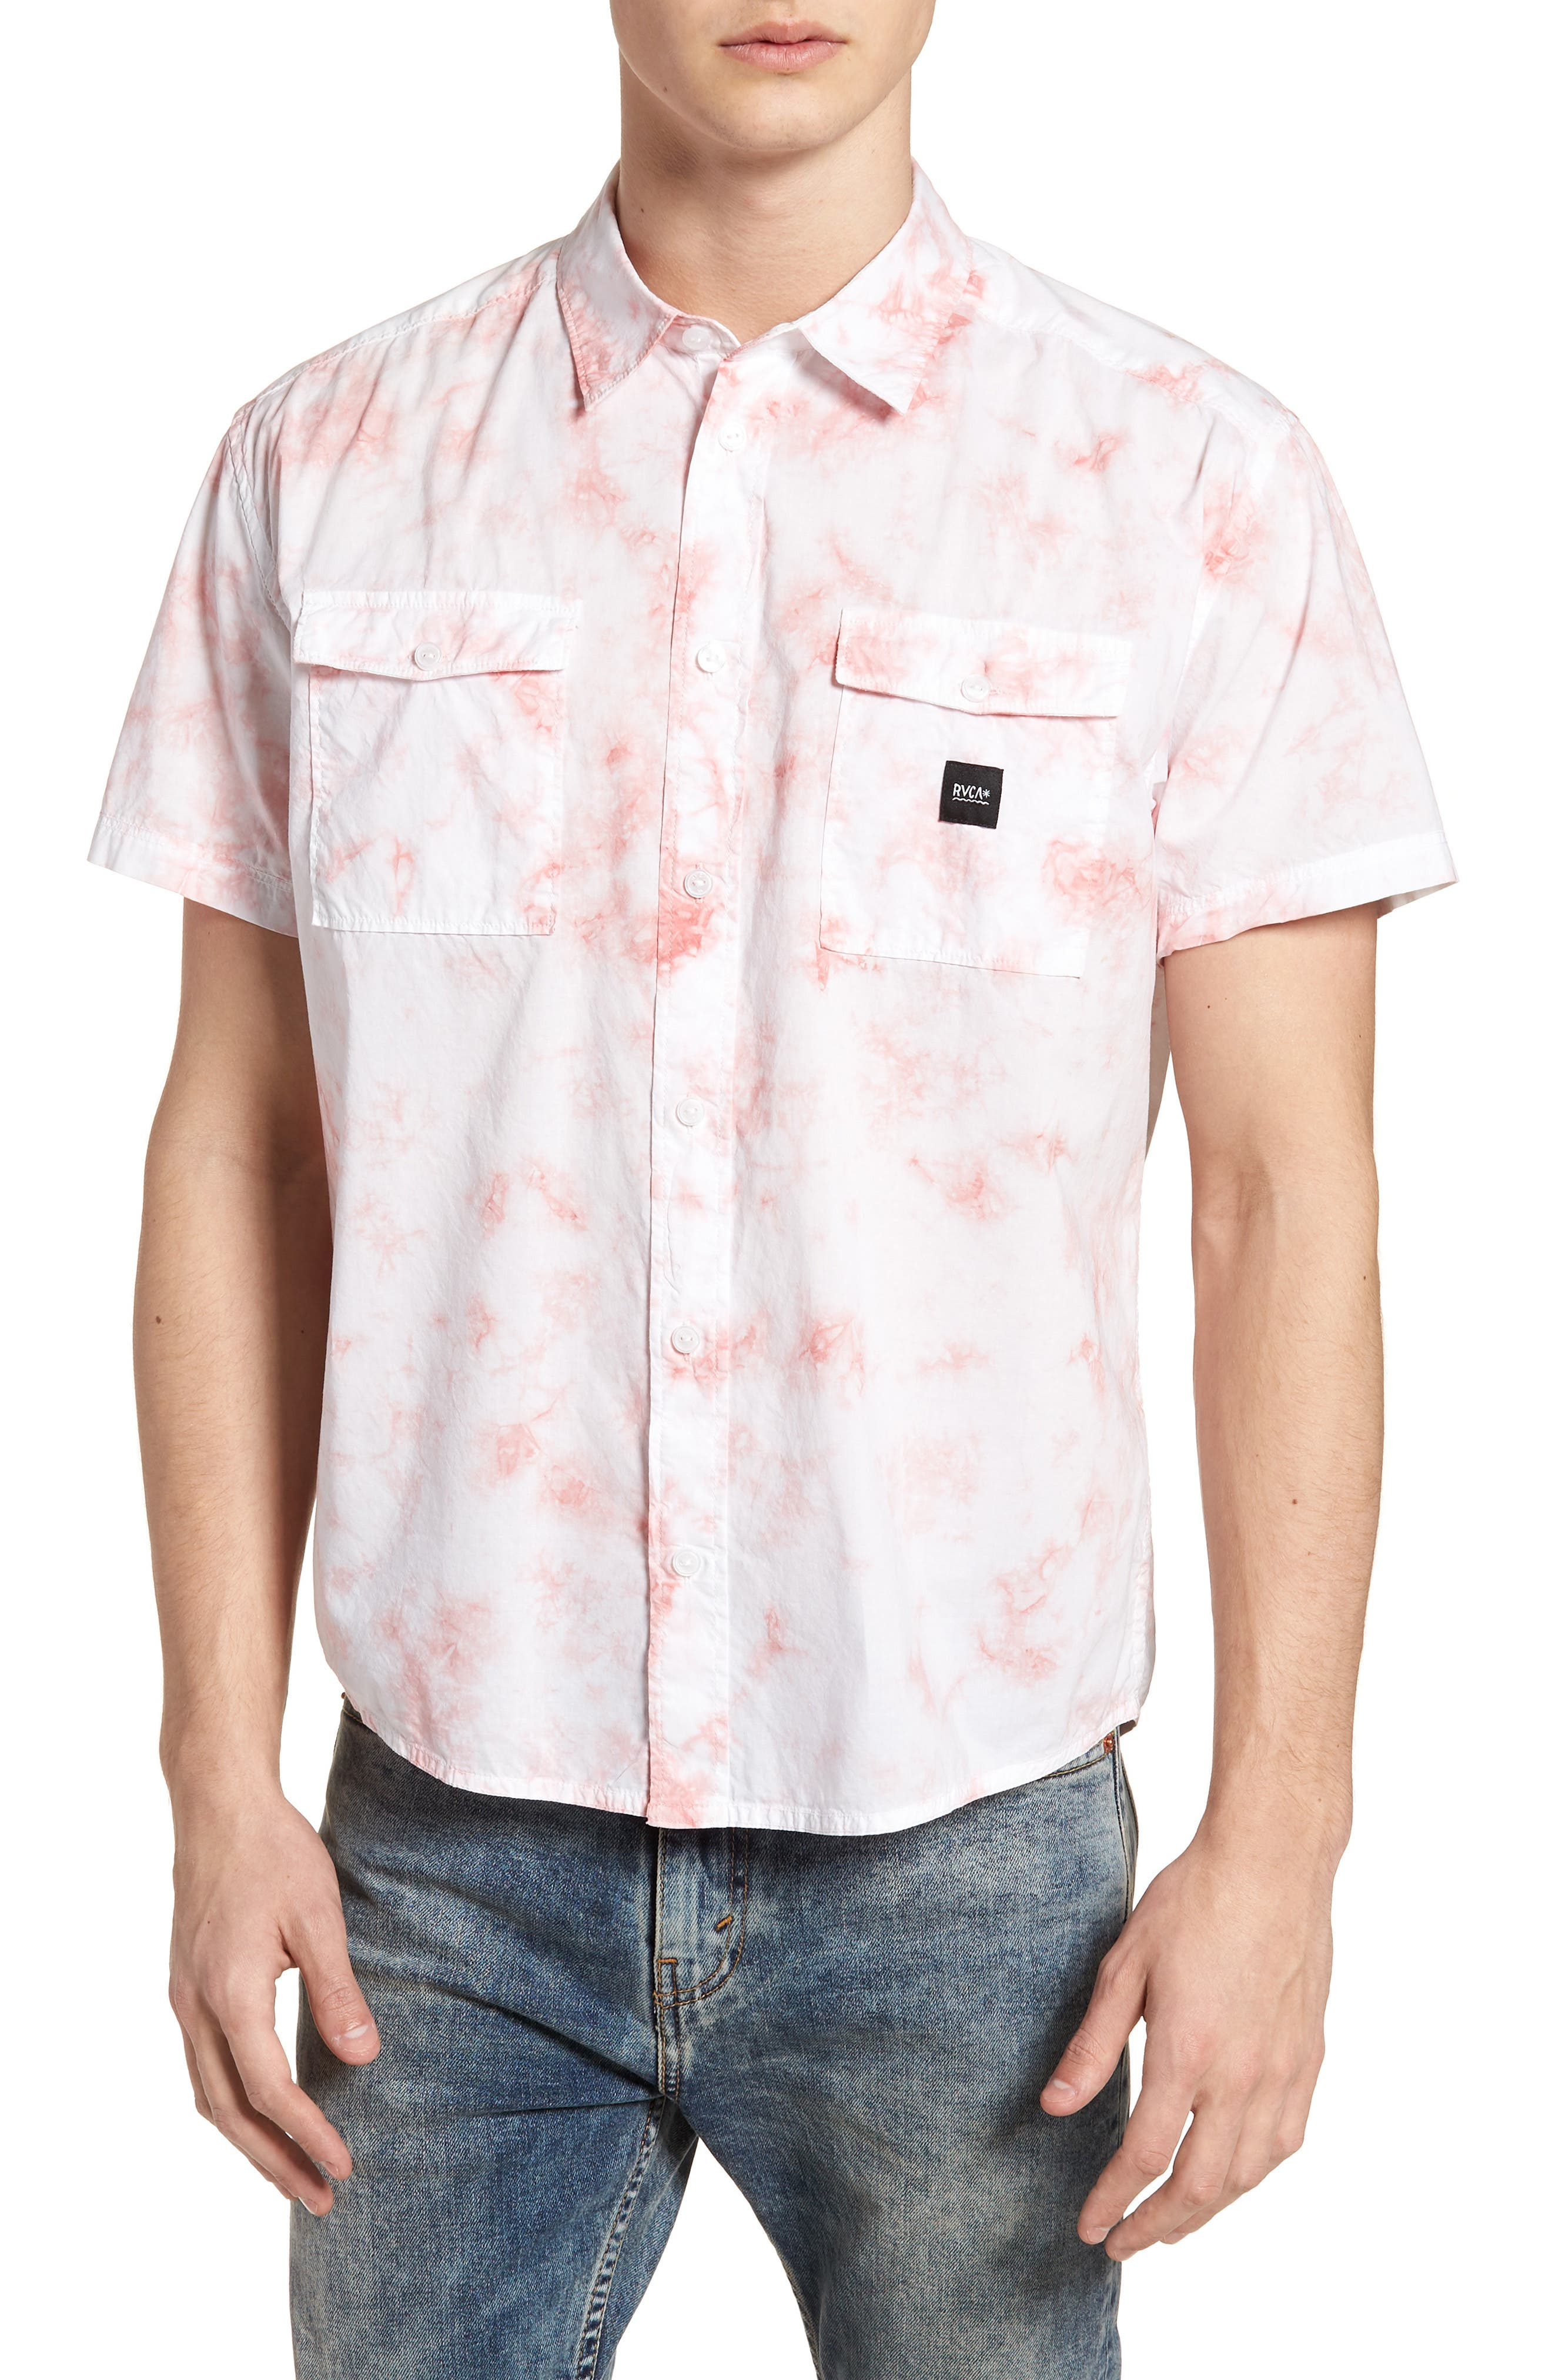 Destroy Woven Shirt,                         Main,                         color, 200